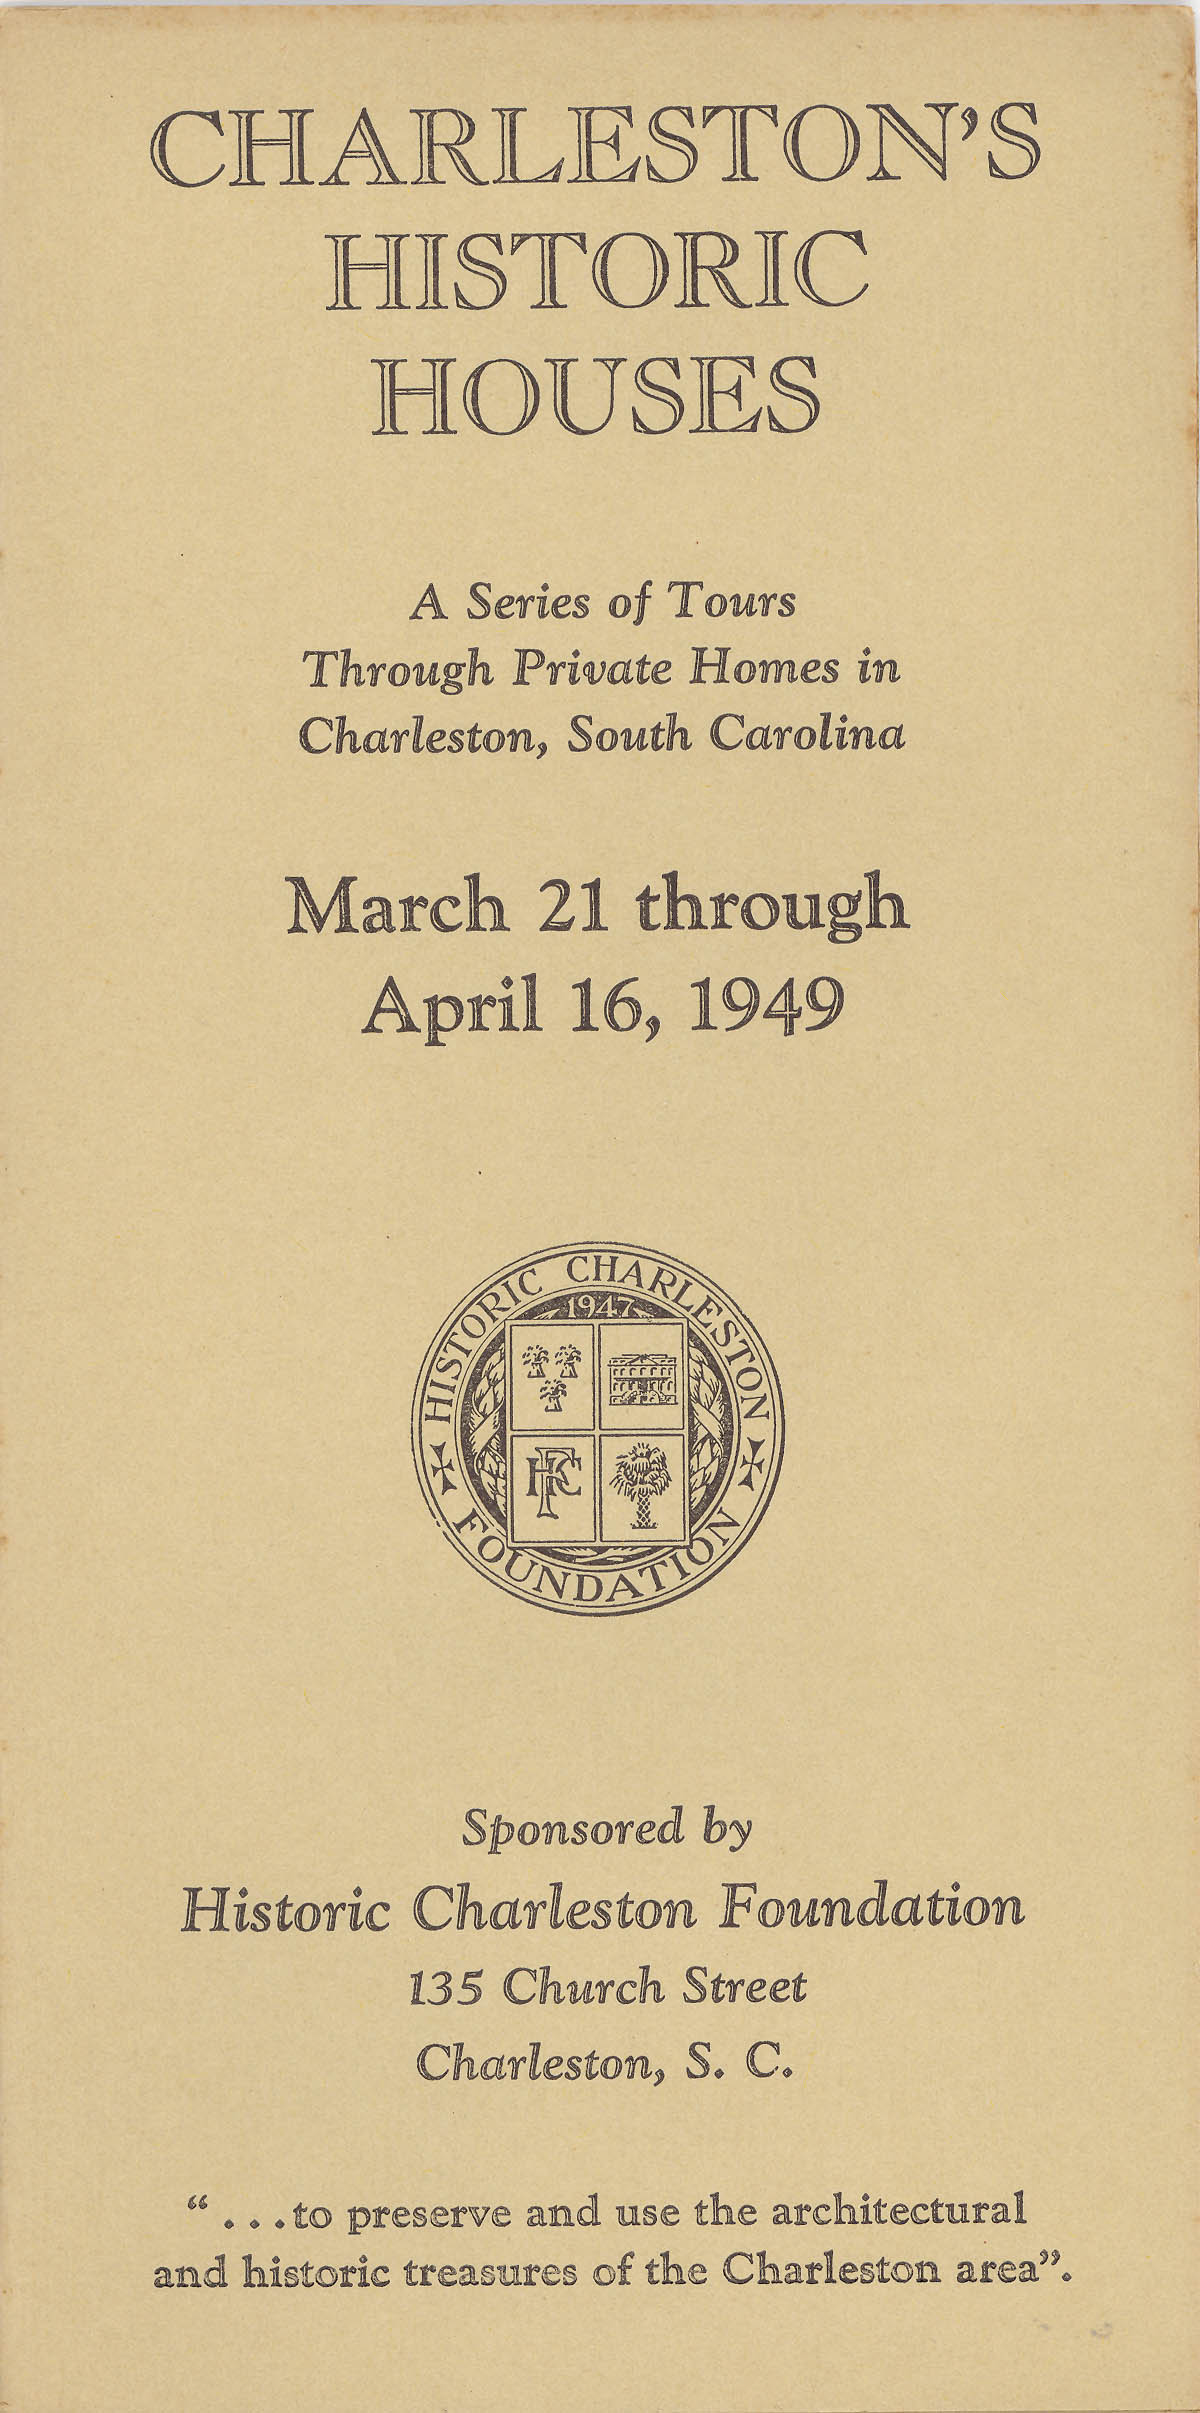 Charleston's Historic Houses, 1949:  Second Annual Tours Sponsored by Historic Charleston Foundation